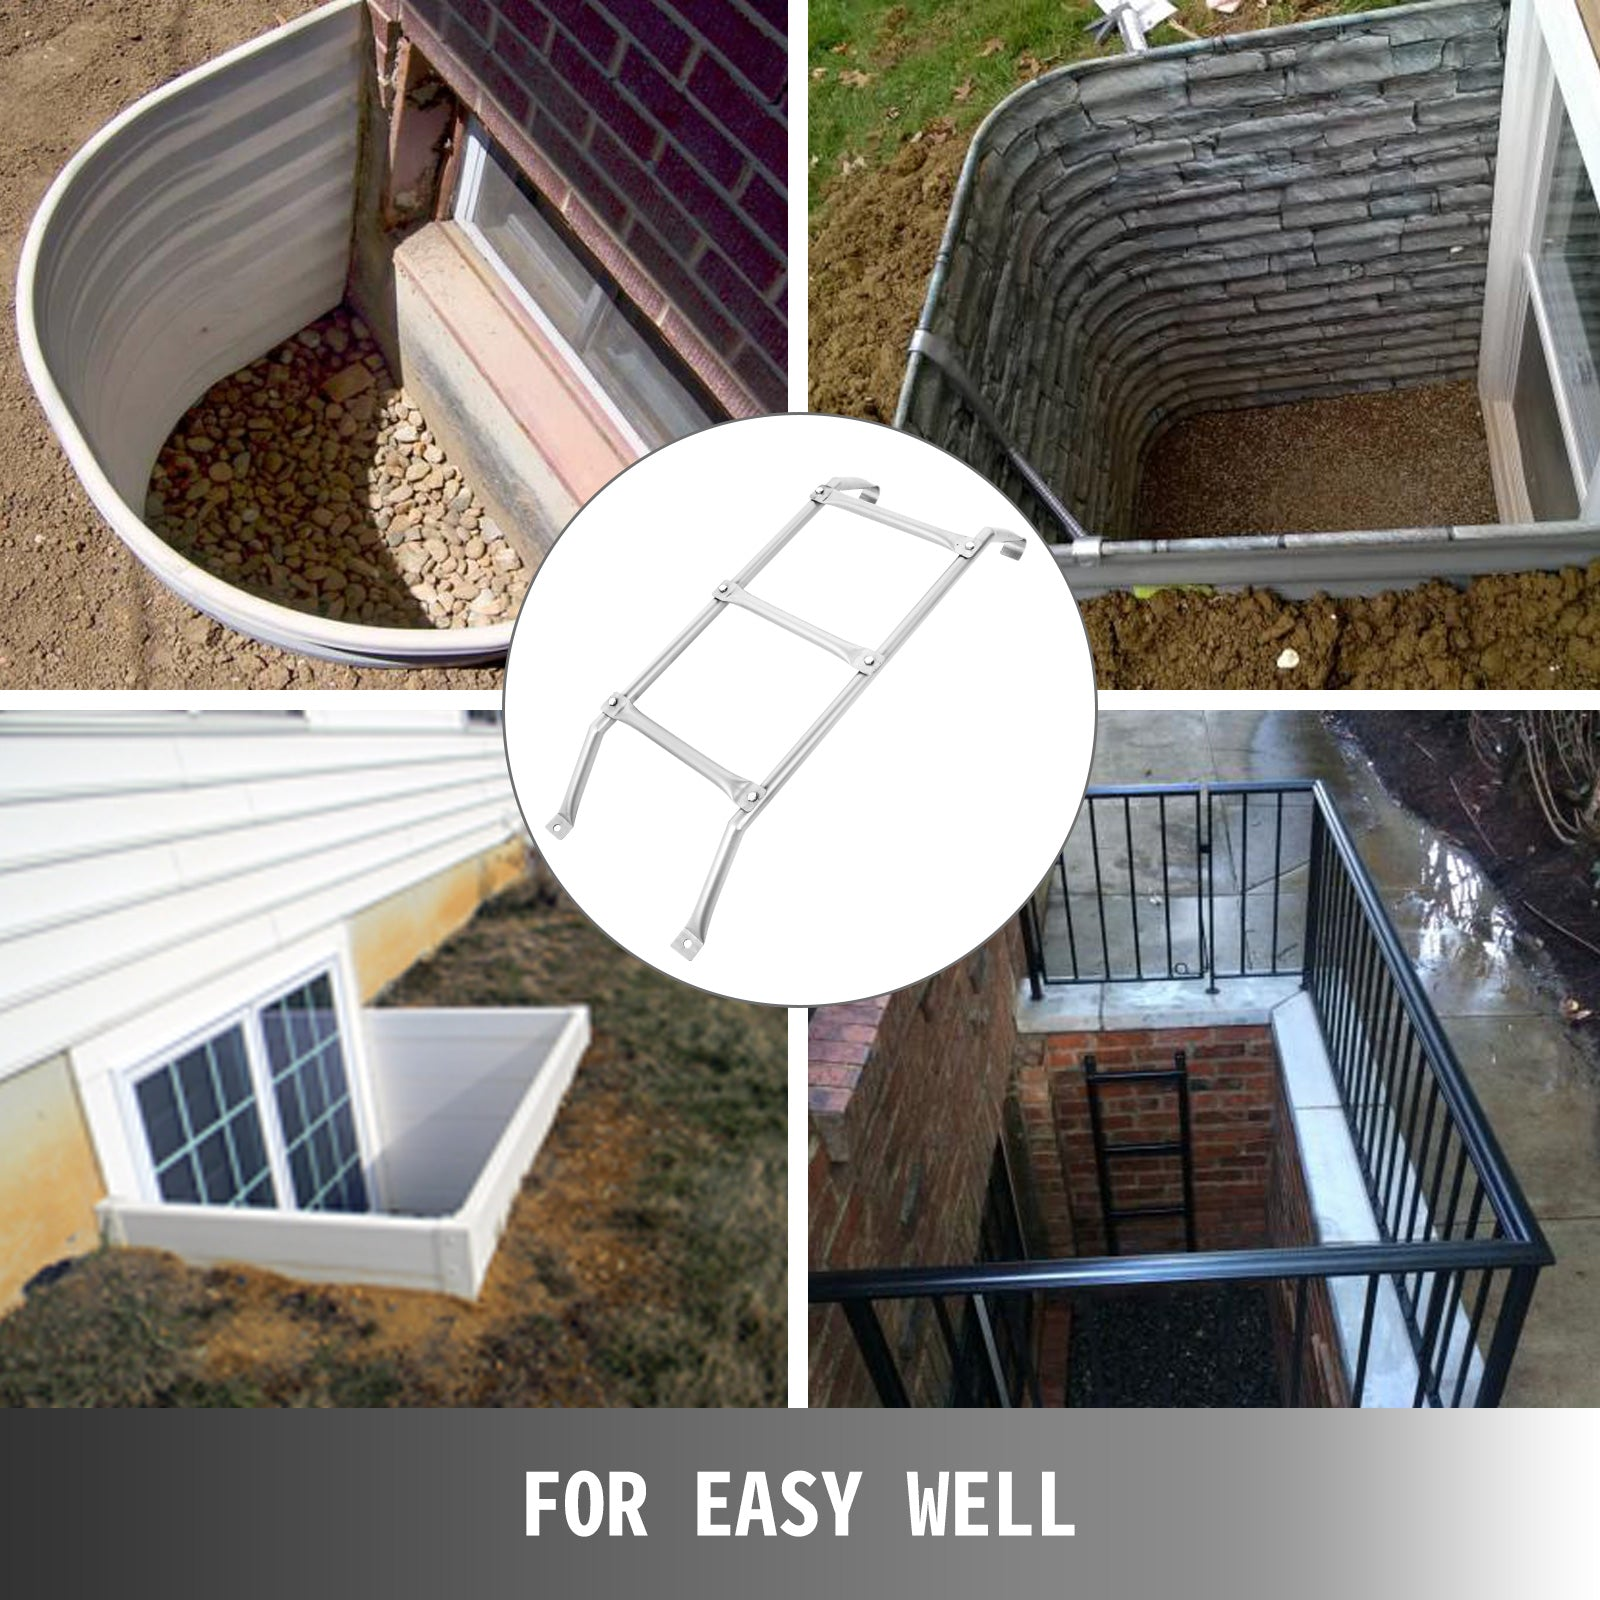 Egress Ladder Basement Basement Egress 4 Steps Window Well Ladder Escape Ladder